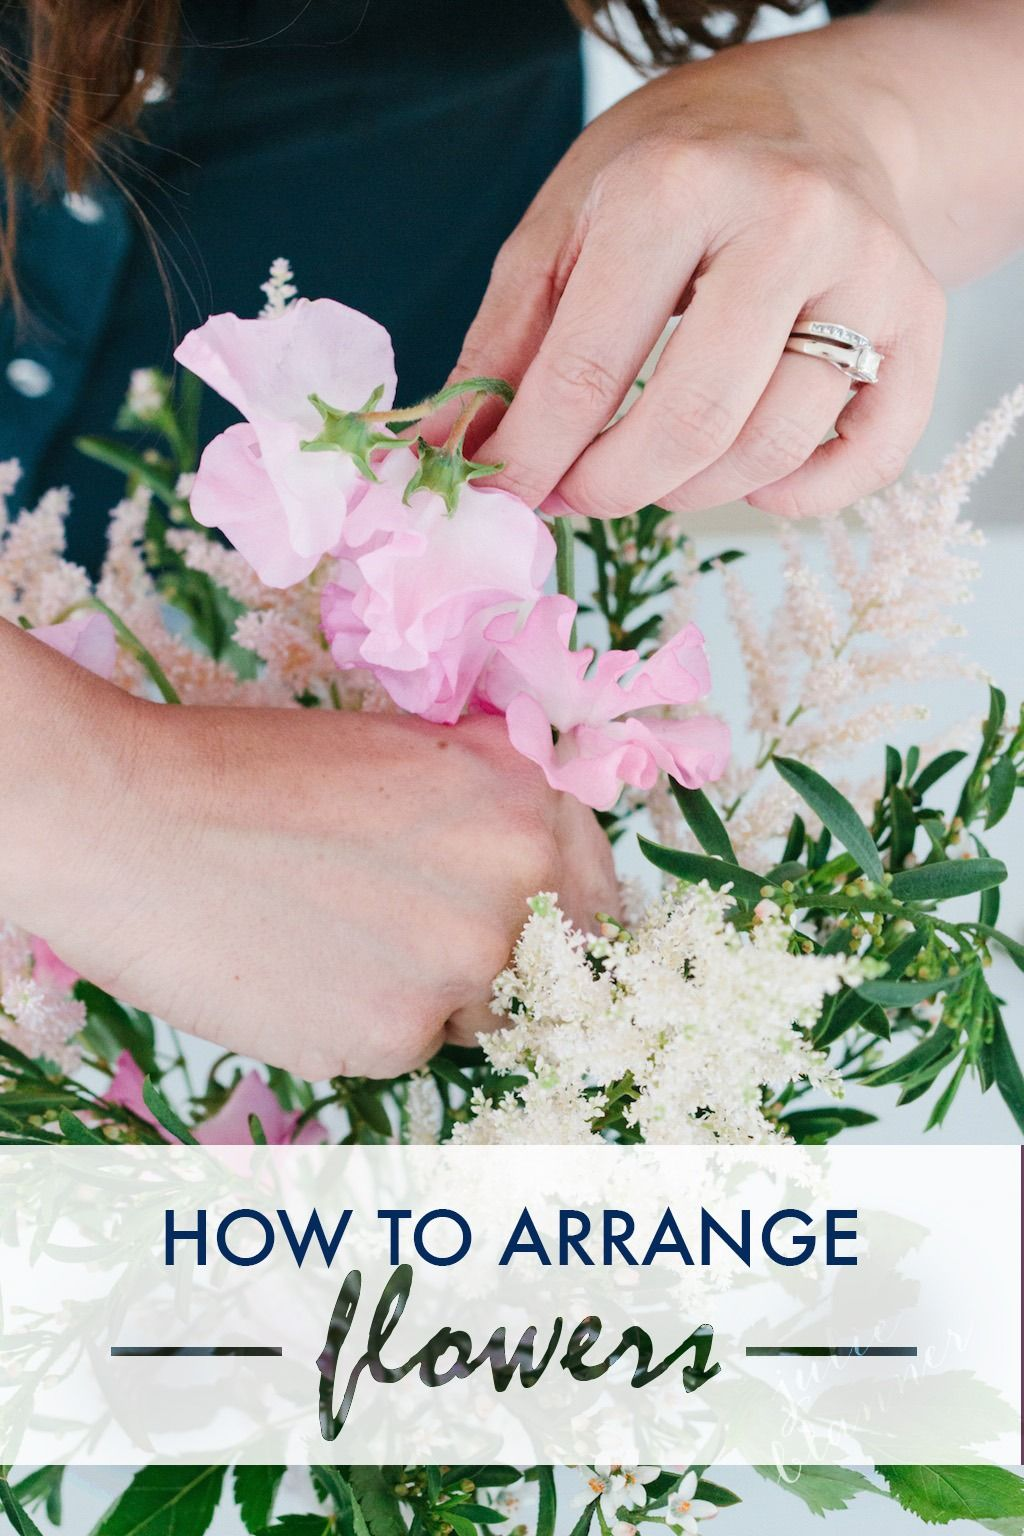 Learn how to create a beautiful flower arrangement for your next party centerpiece or hostess gift in just 15 minutes with this step-by-step tutorial!